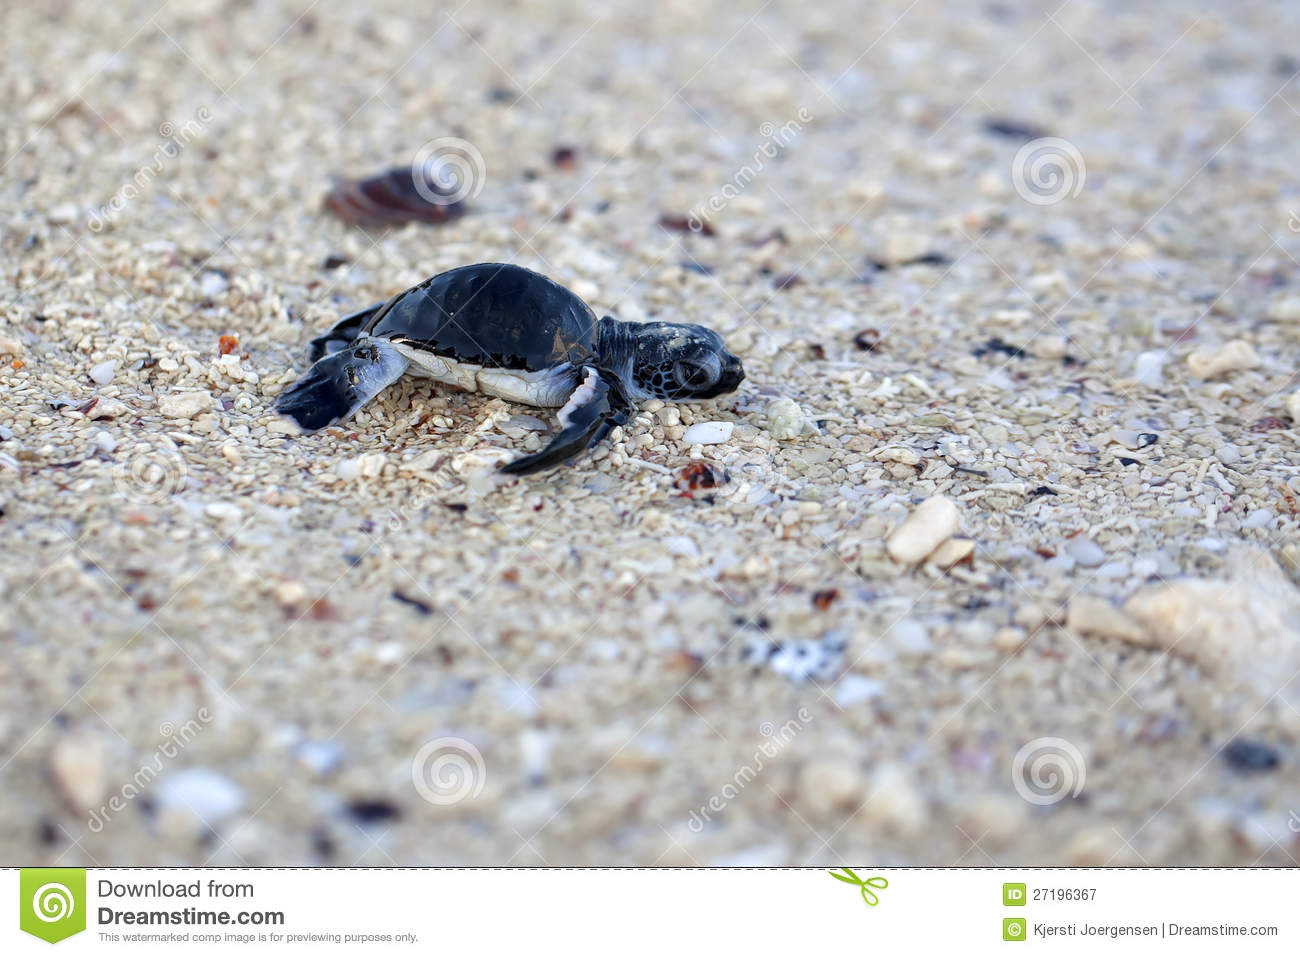 Green Sea Turtle Hatchling making its first steps from the beach to ...: dreamstime.com/royalty-free-stock-photography-green-sea-turtle...